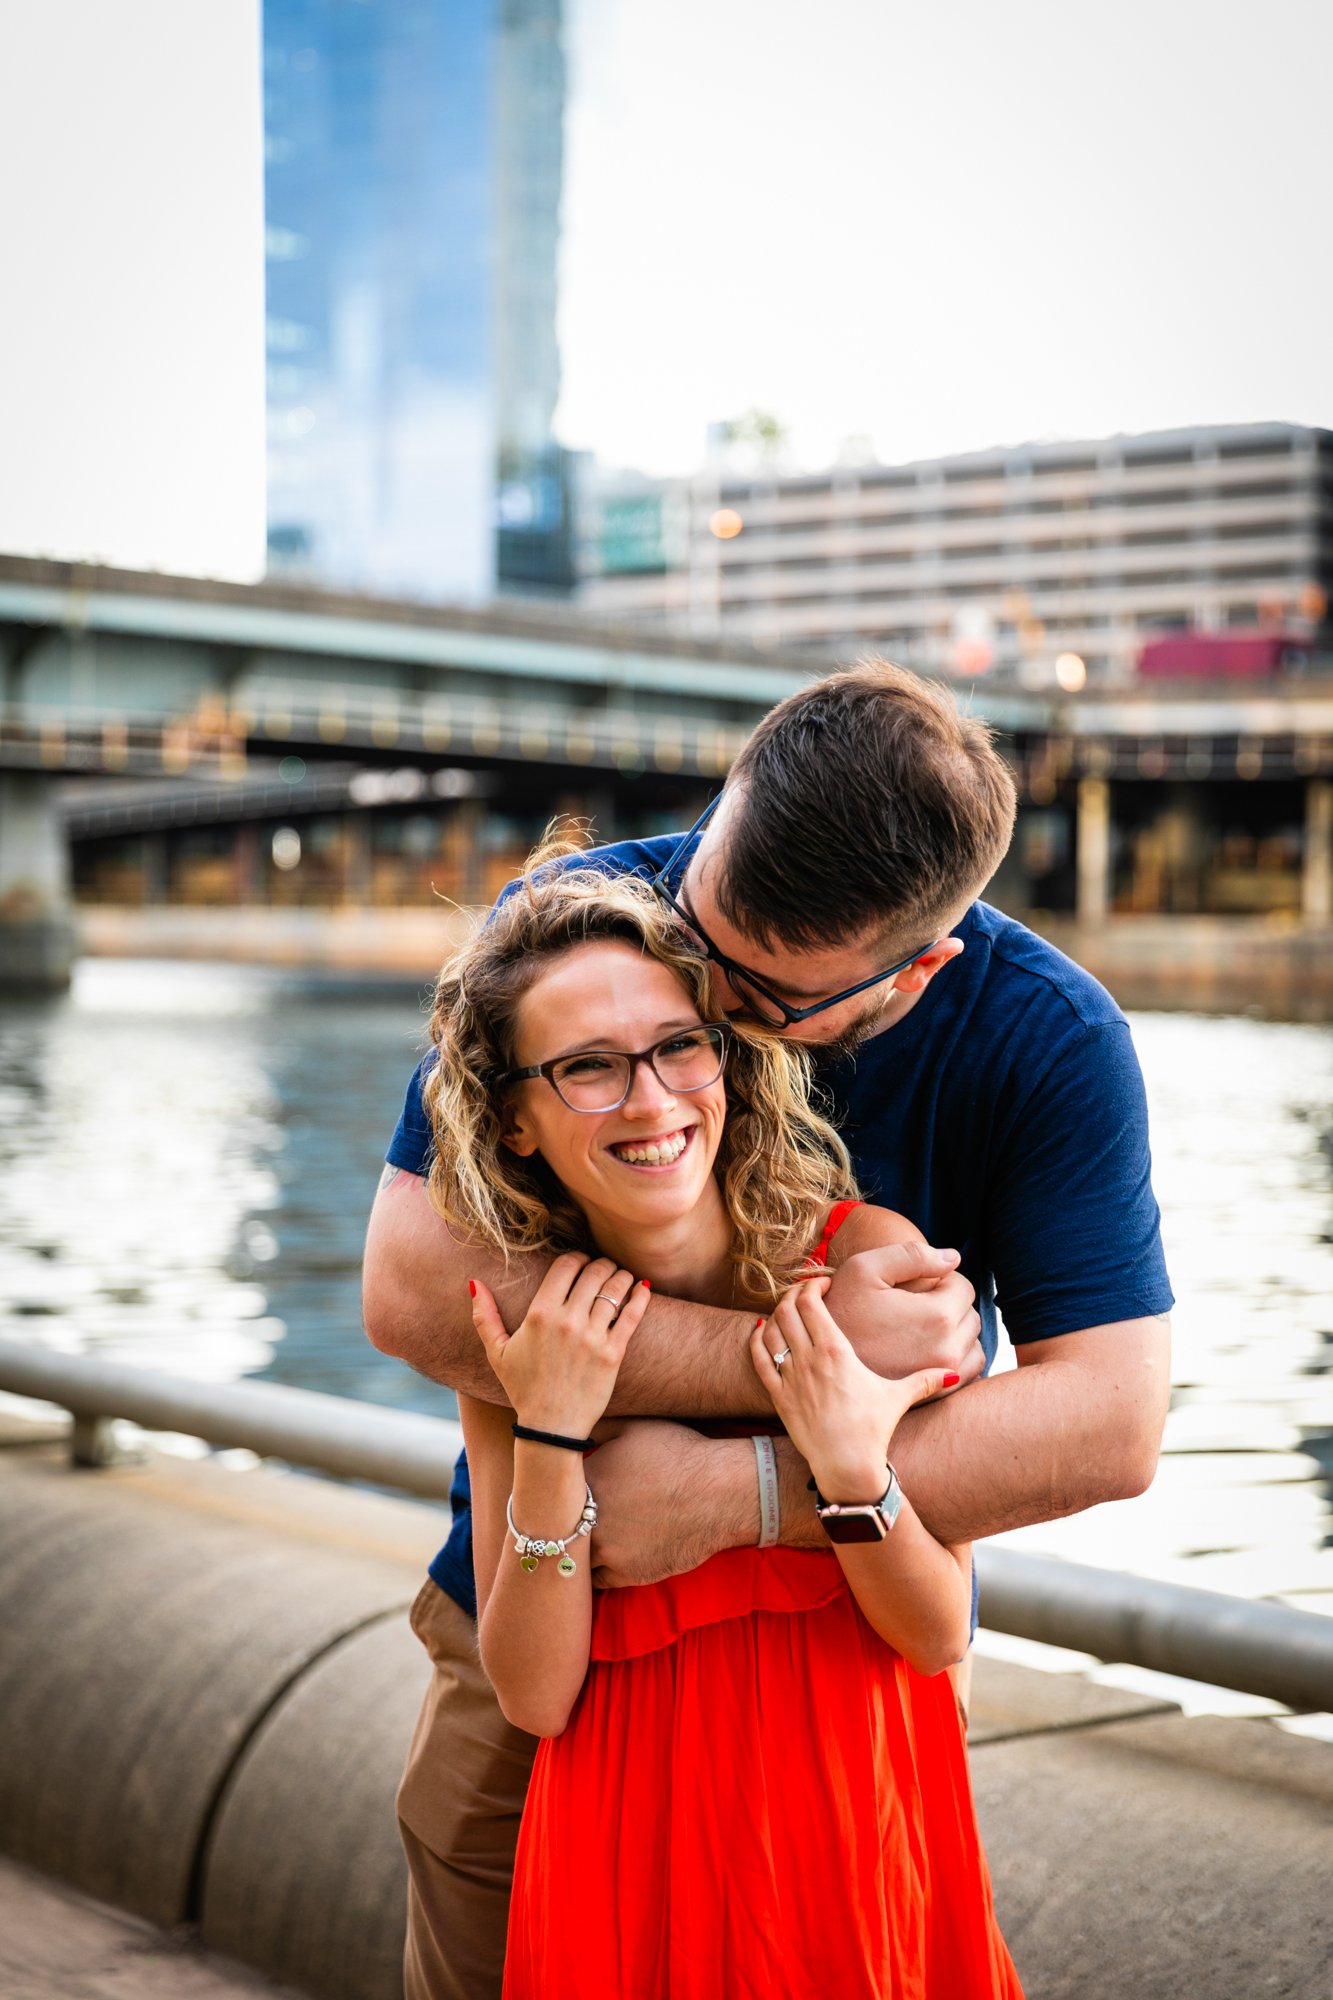 Engagament Photography Philadelphia - LoveStruck Pictures - Schuylkill River Trail-007.jpg